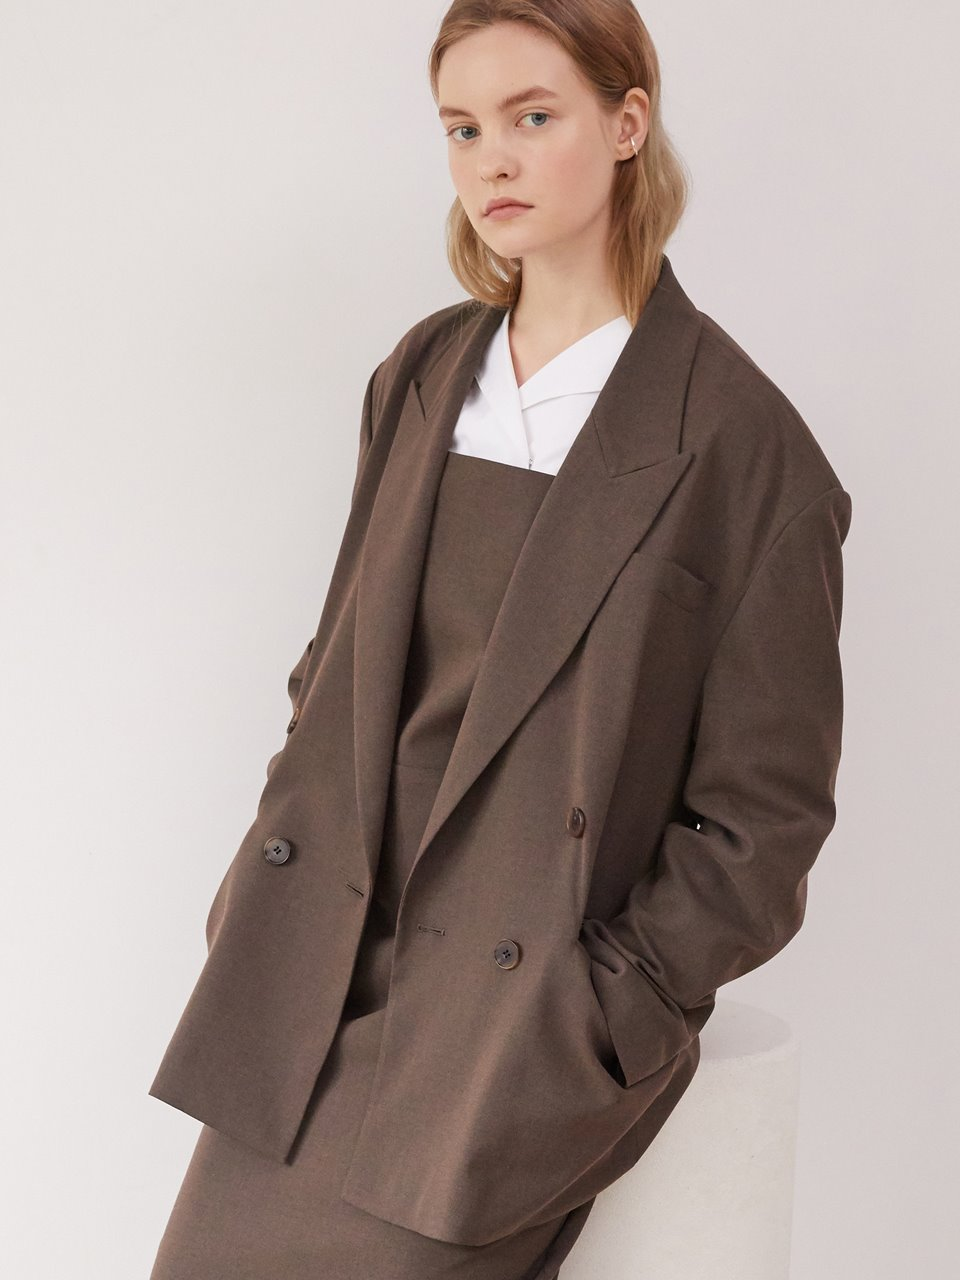 Overfit double jacket - Brown